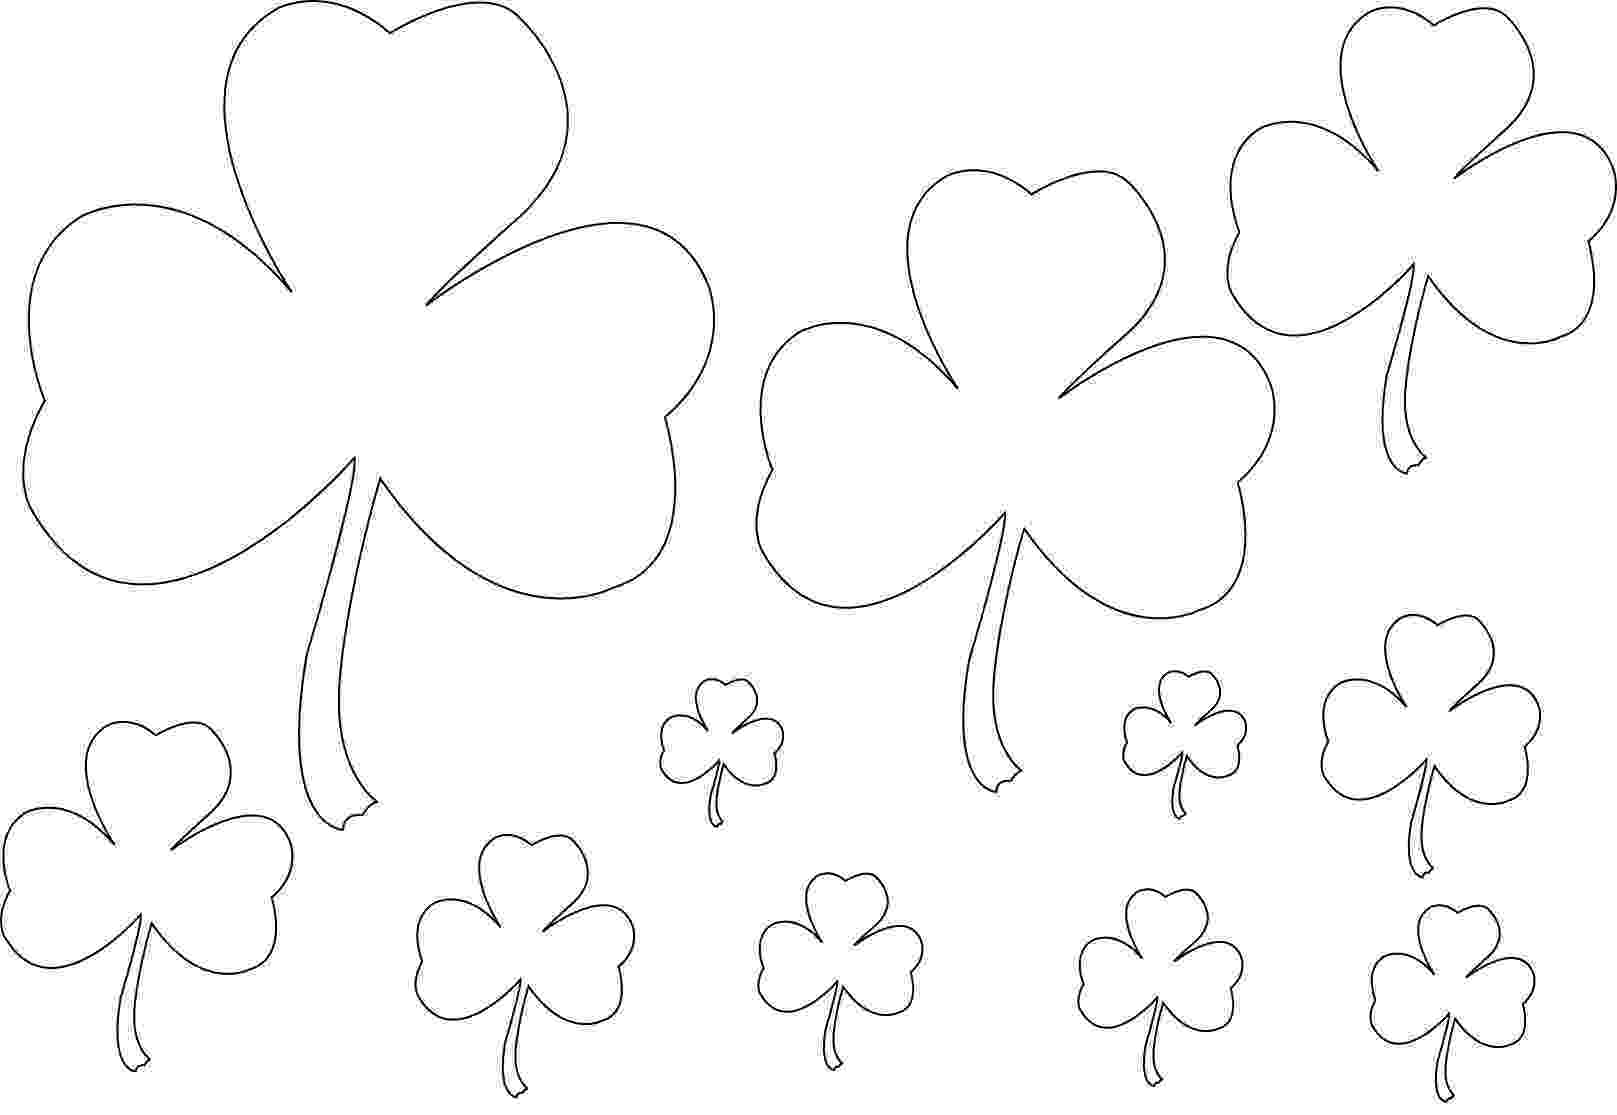 shamrock coloring free printable shamrock coloring pages for kids shamrock coloring 1 1